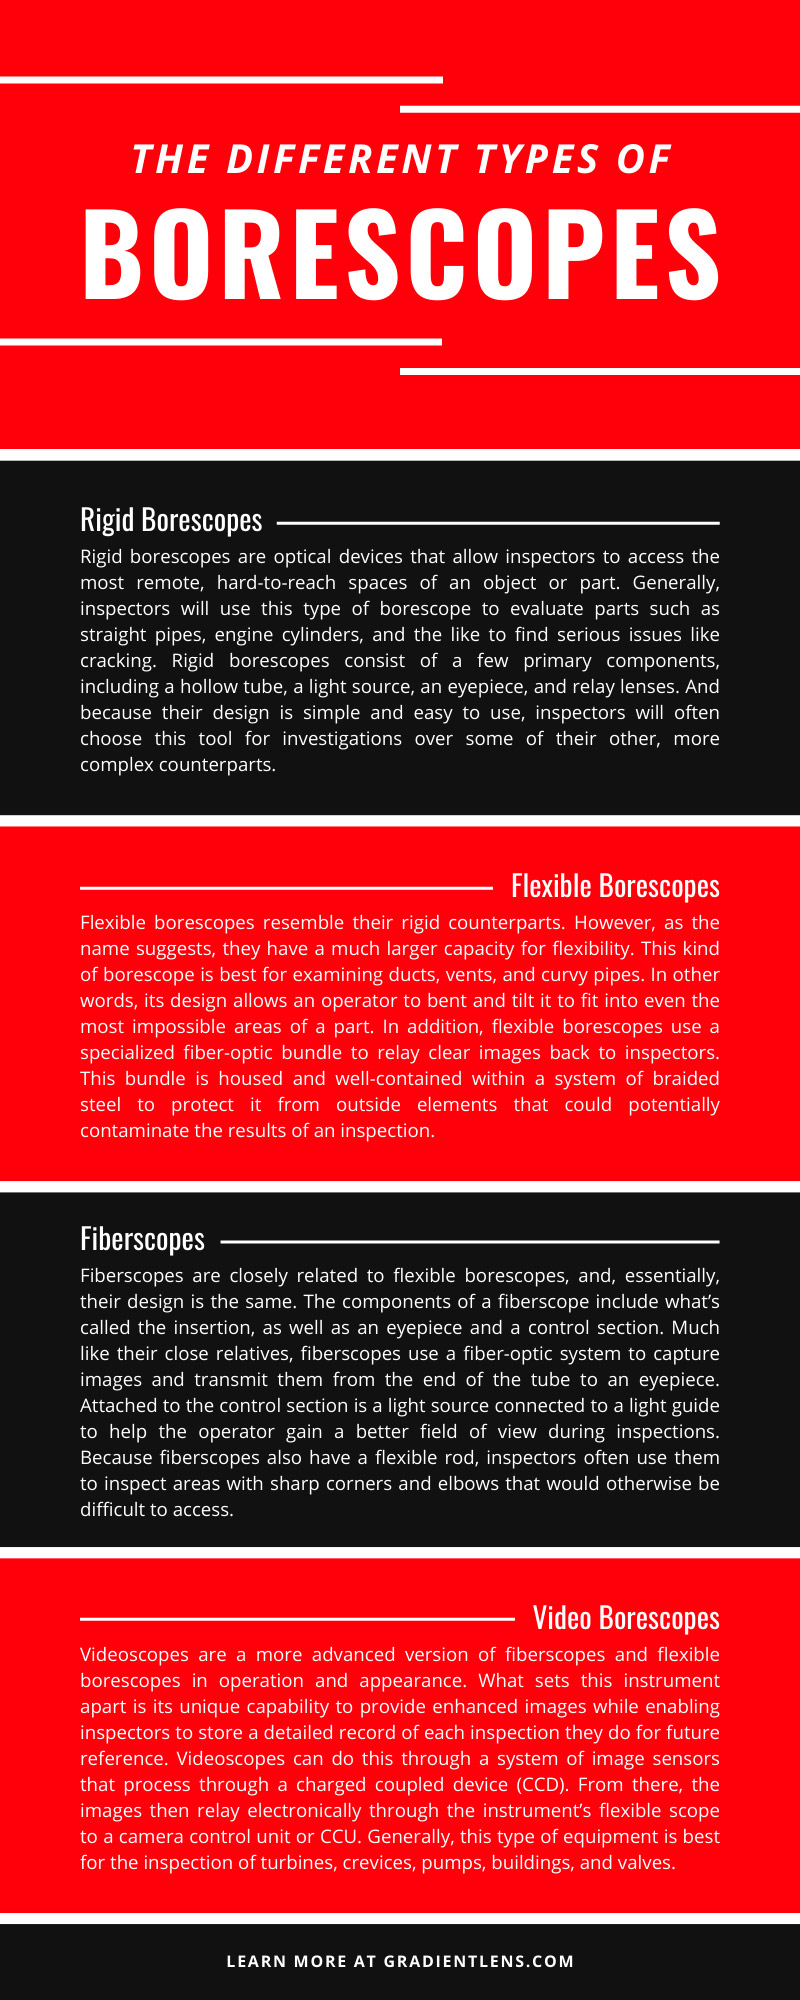 The Different Types of Borescopes